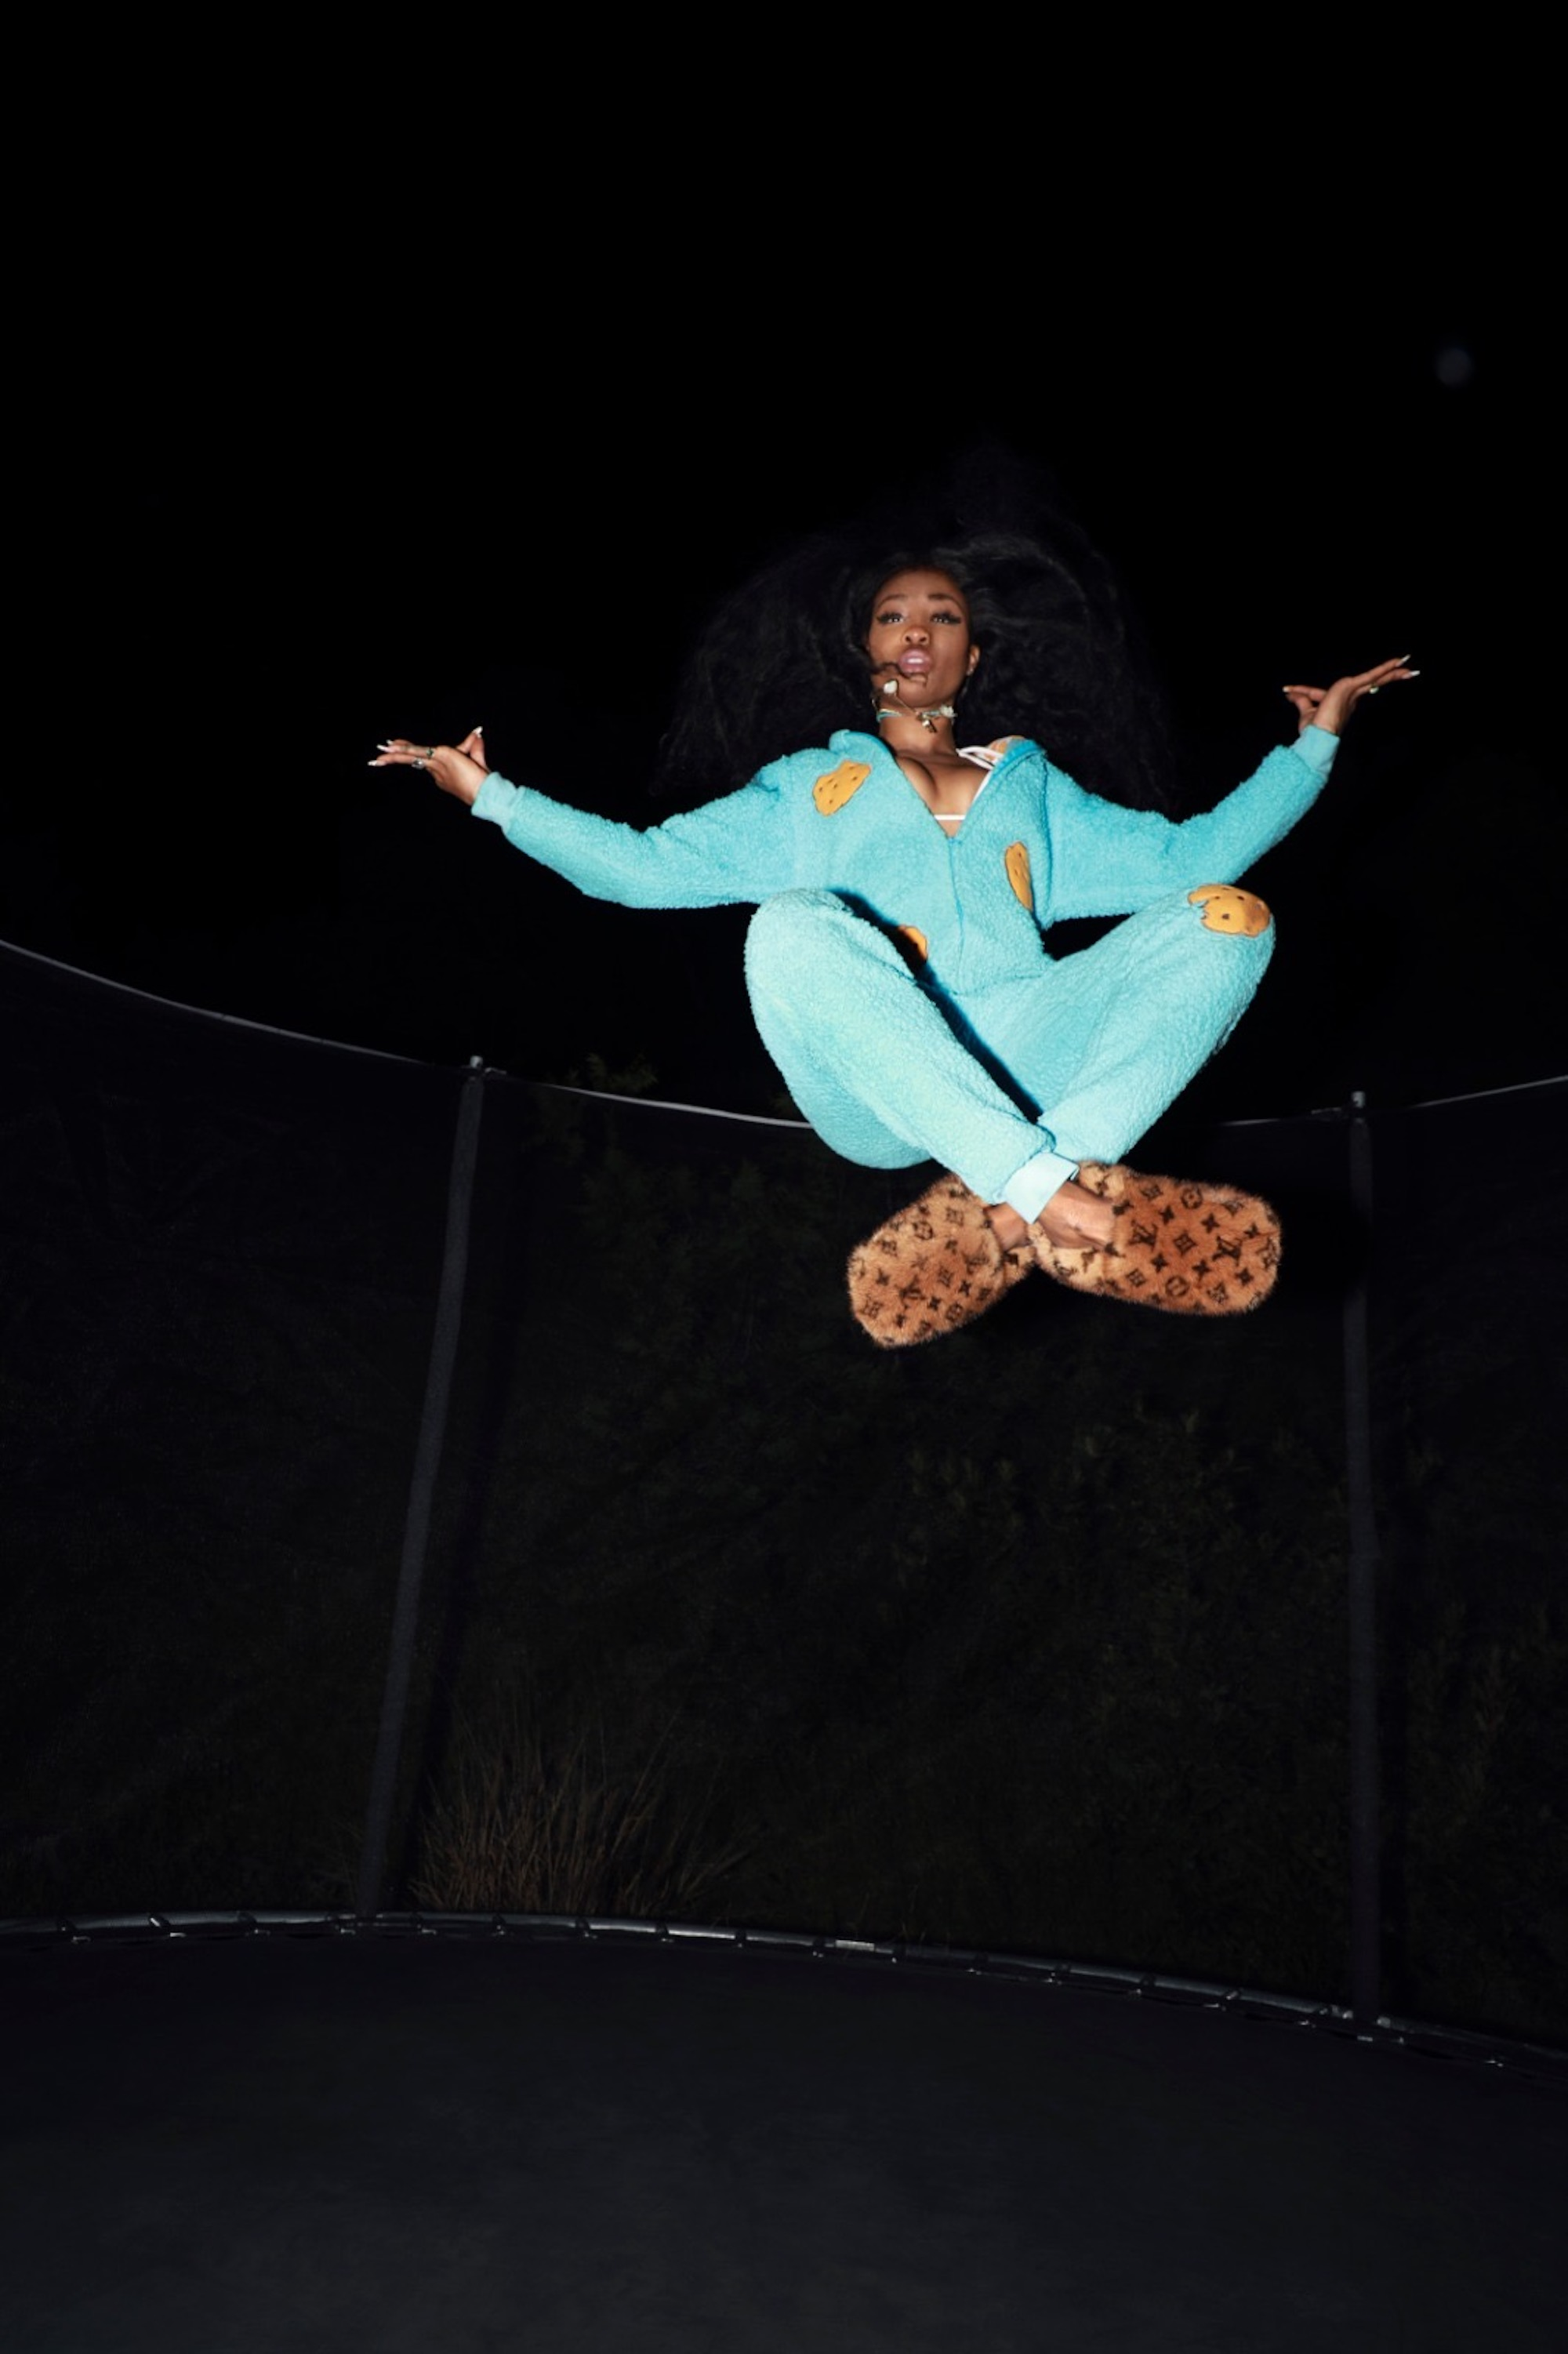 SZA in a onesie jumping on a trampoline